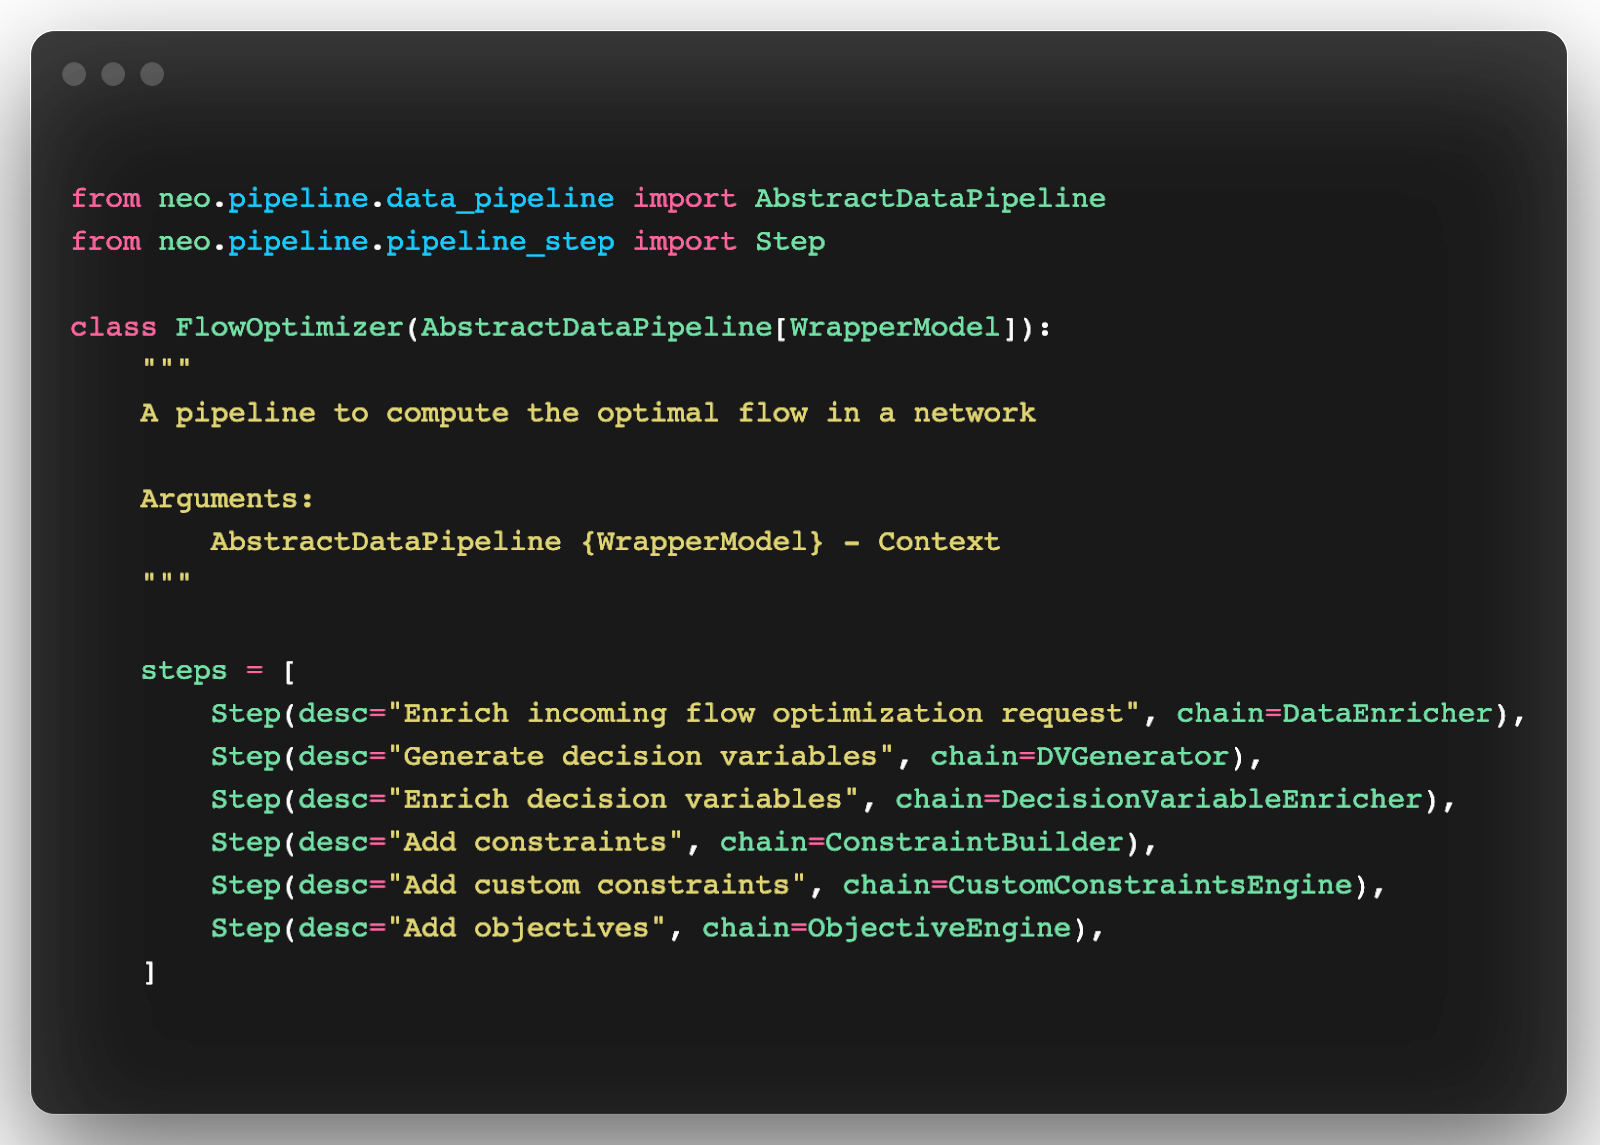 implementation of the workflow using the pipeline abstraction module